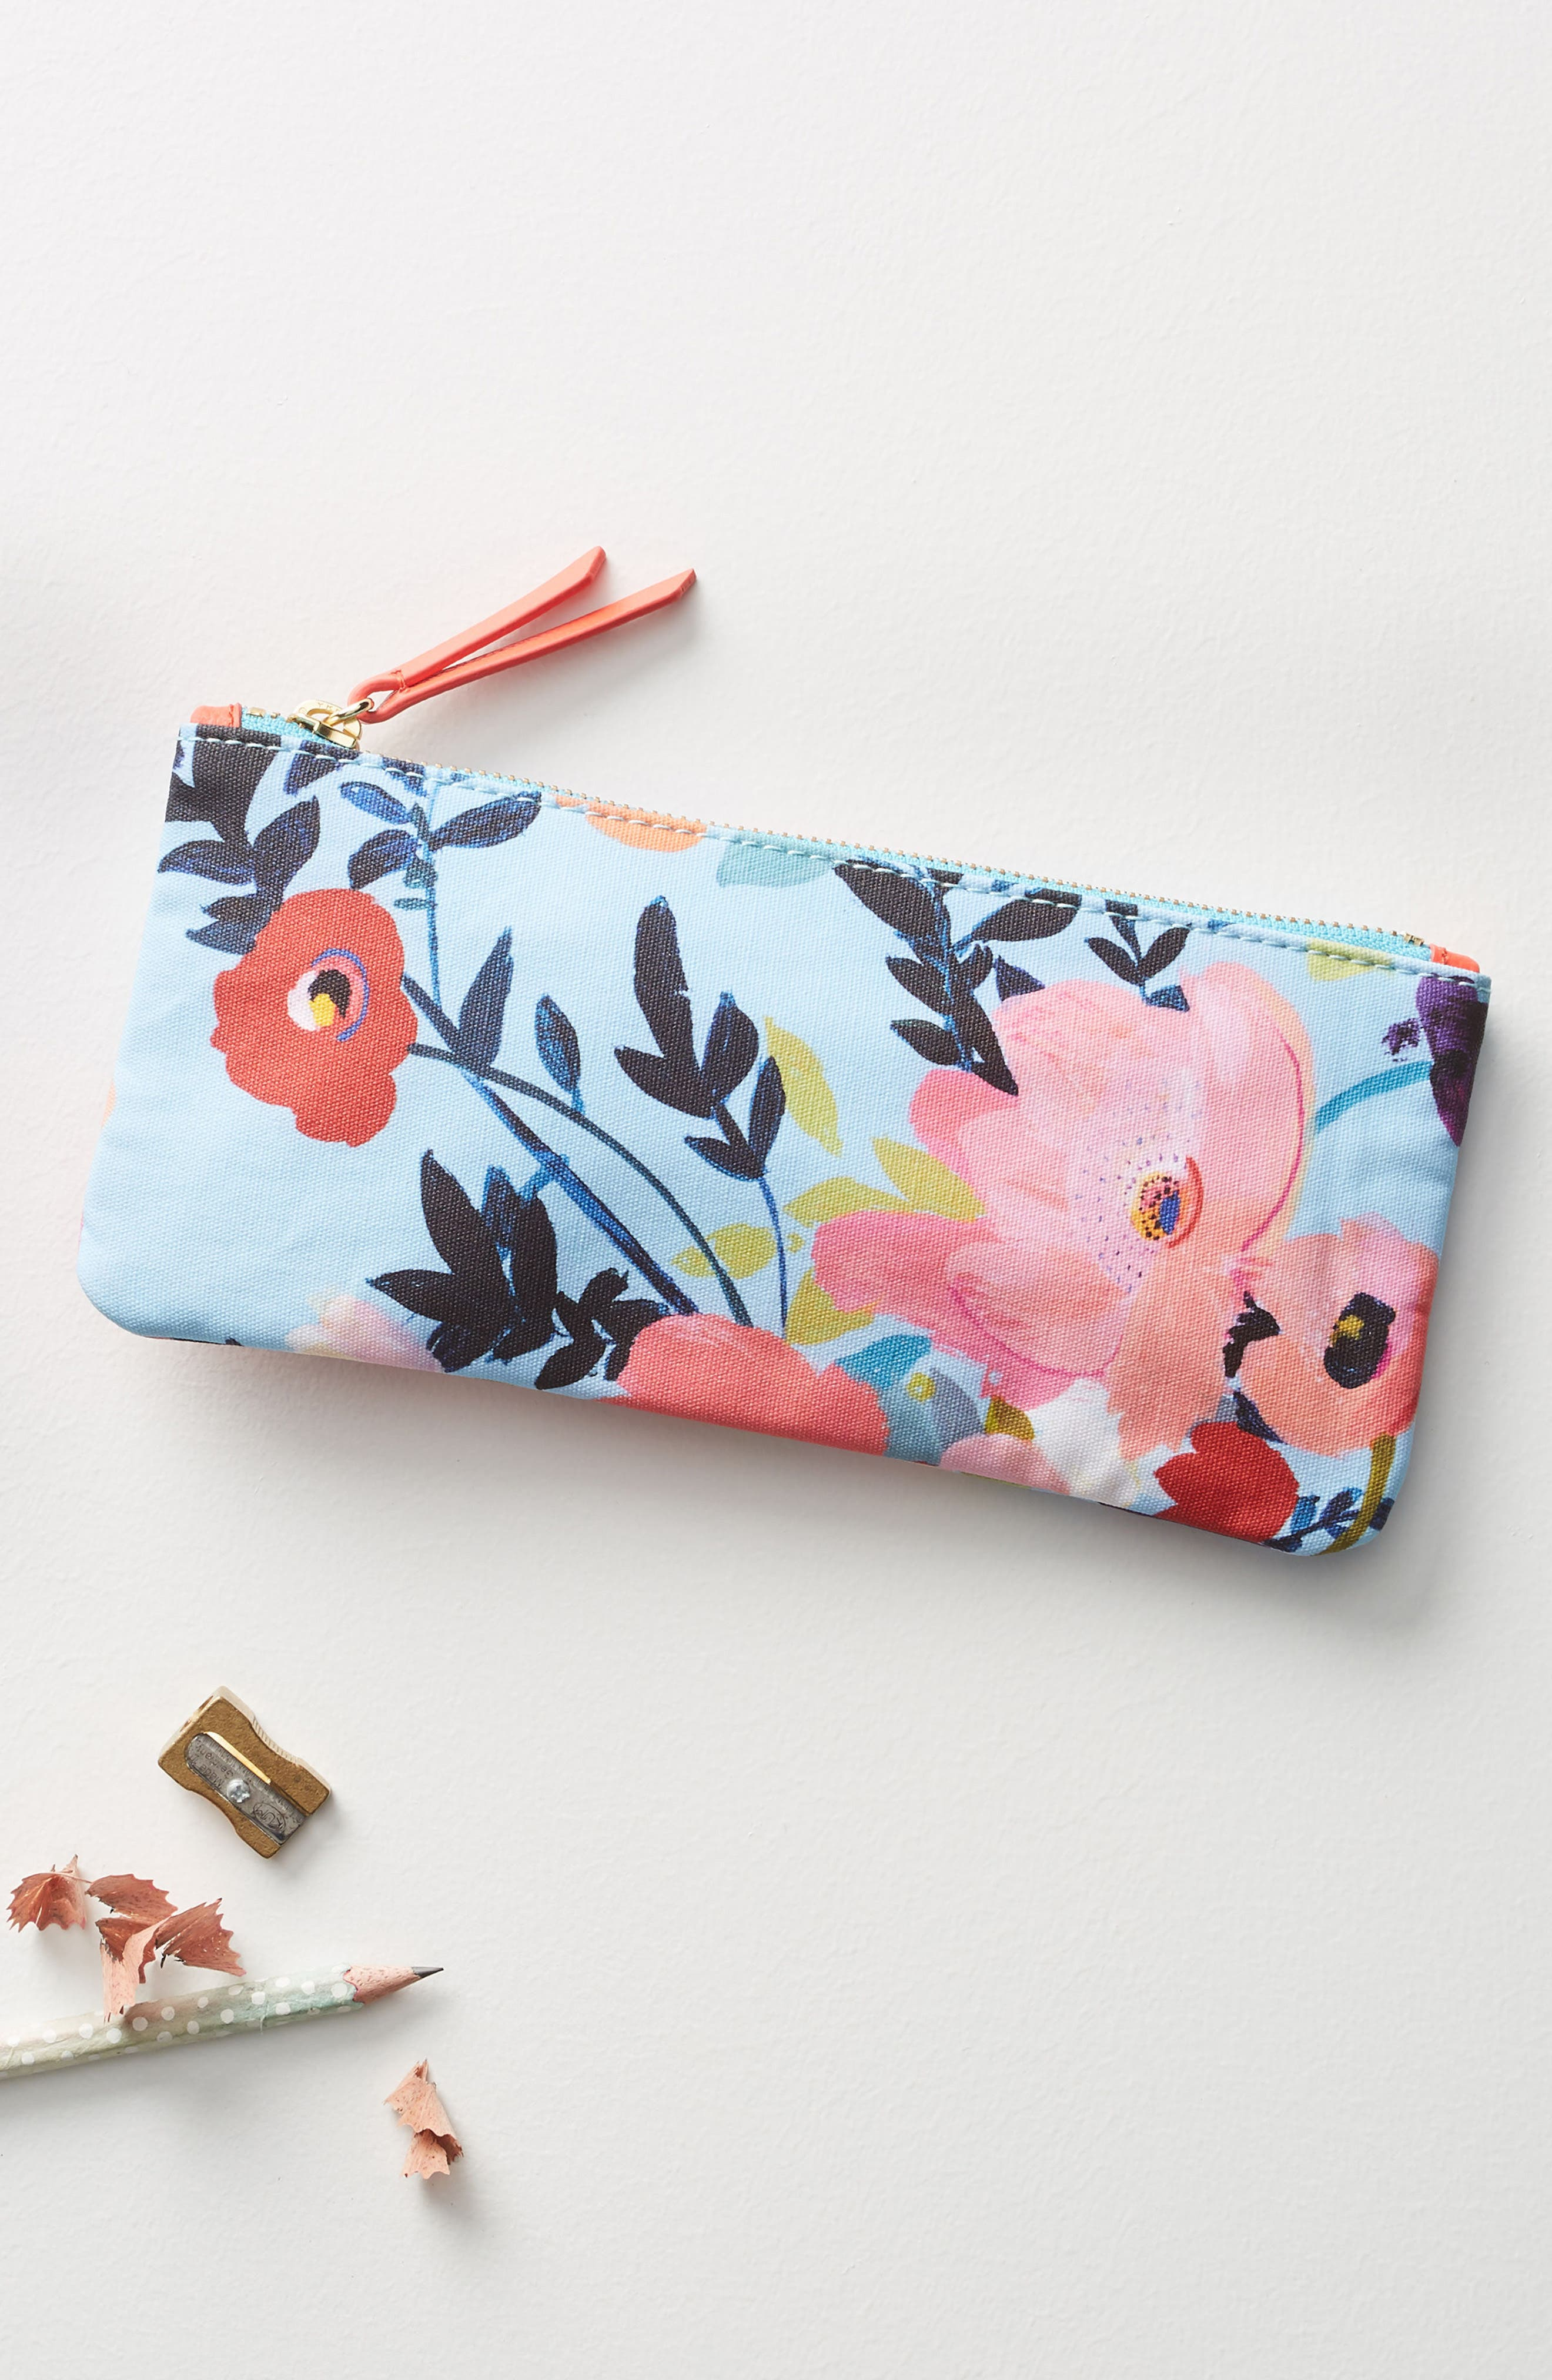 Picturesque Florals Pencil Pouch,                             Main thumbnail 1, color,                             400